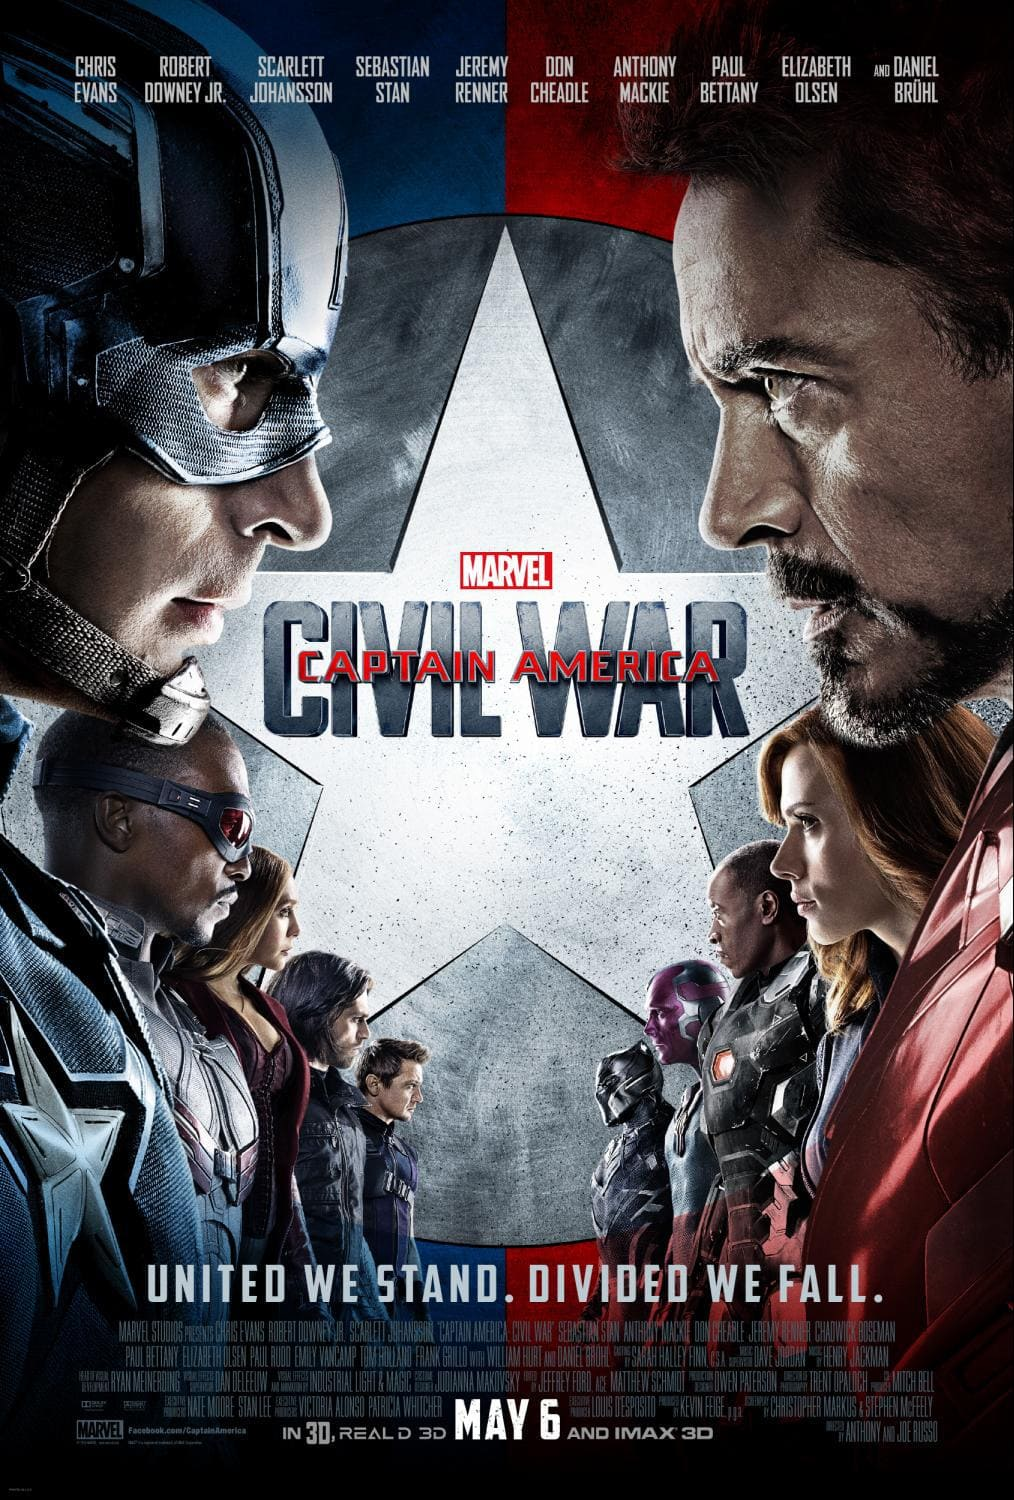 I'm Attending Marvel's Captain America: Civil War Red Carpet World Premiere